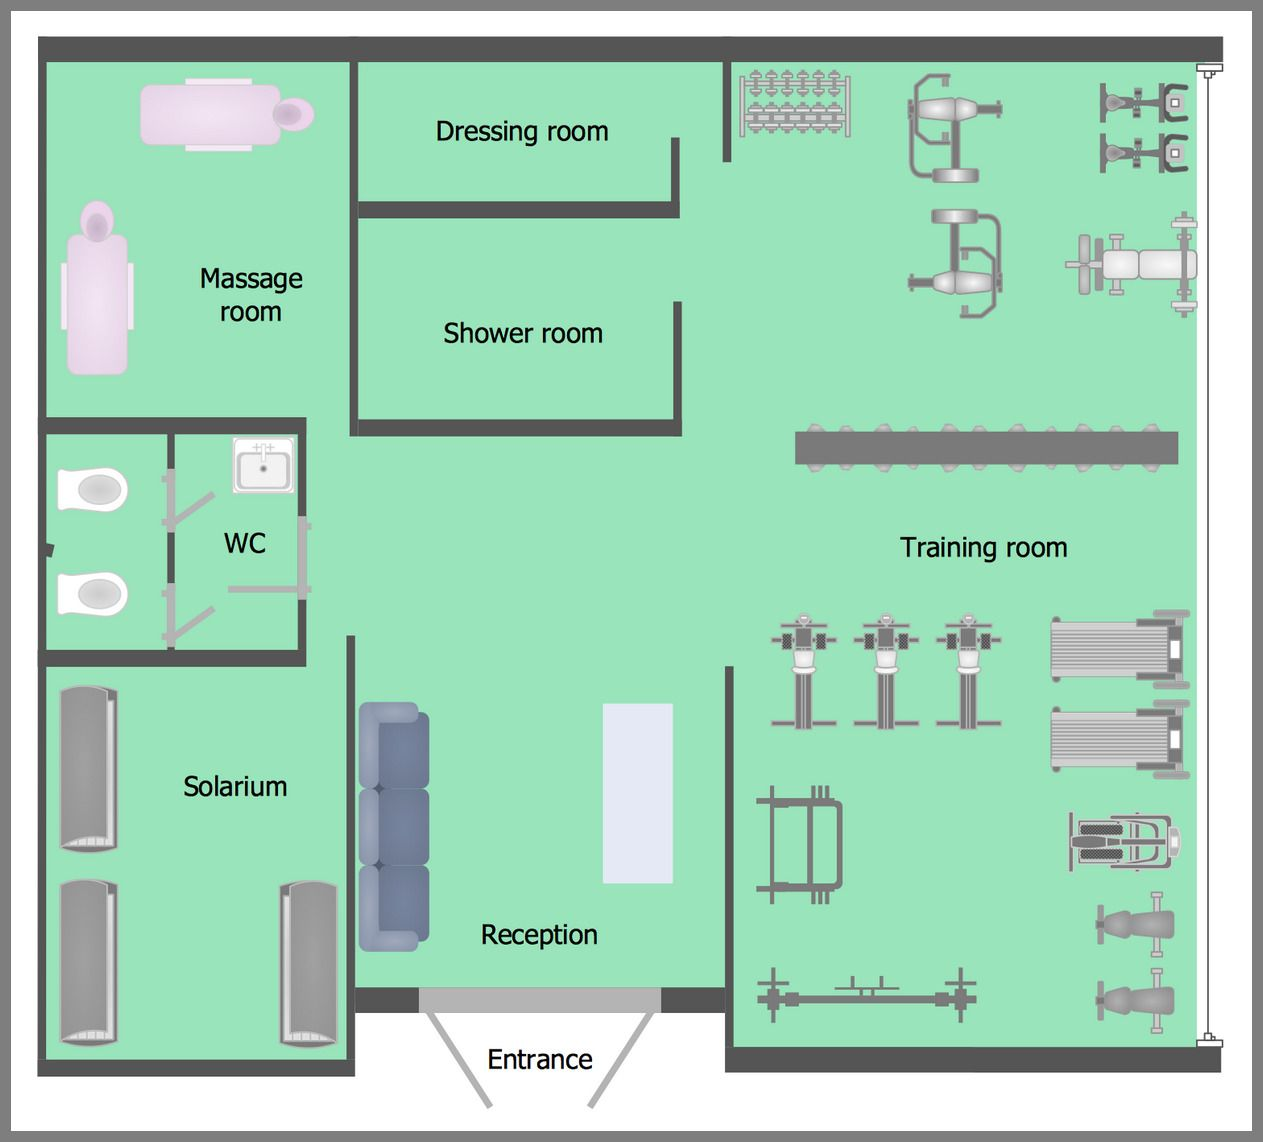 48 Reference Of Dressing Room Design Layout Floor Plans Floor Plans Floor Plan Layout Gym Plans